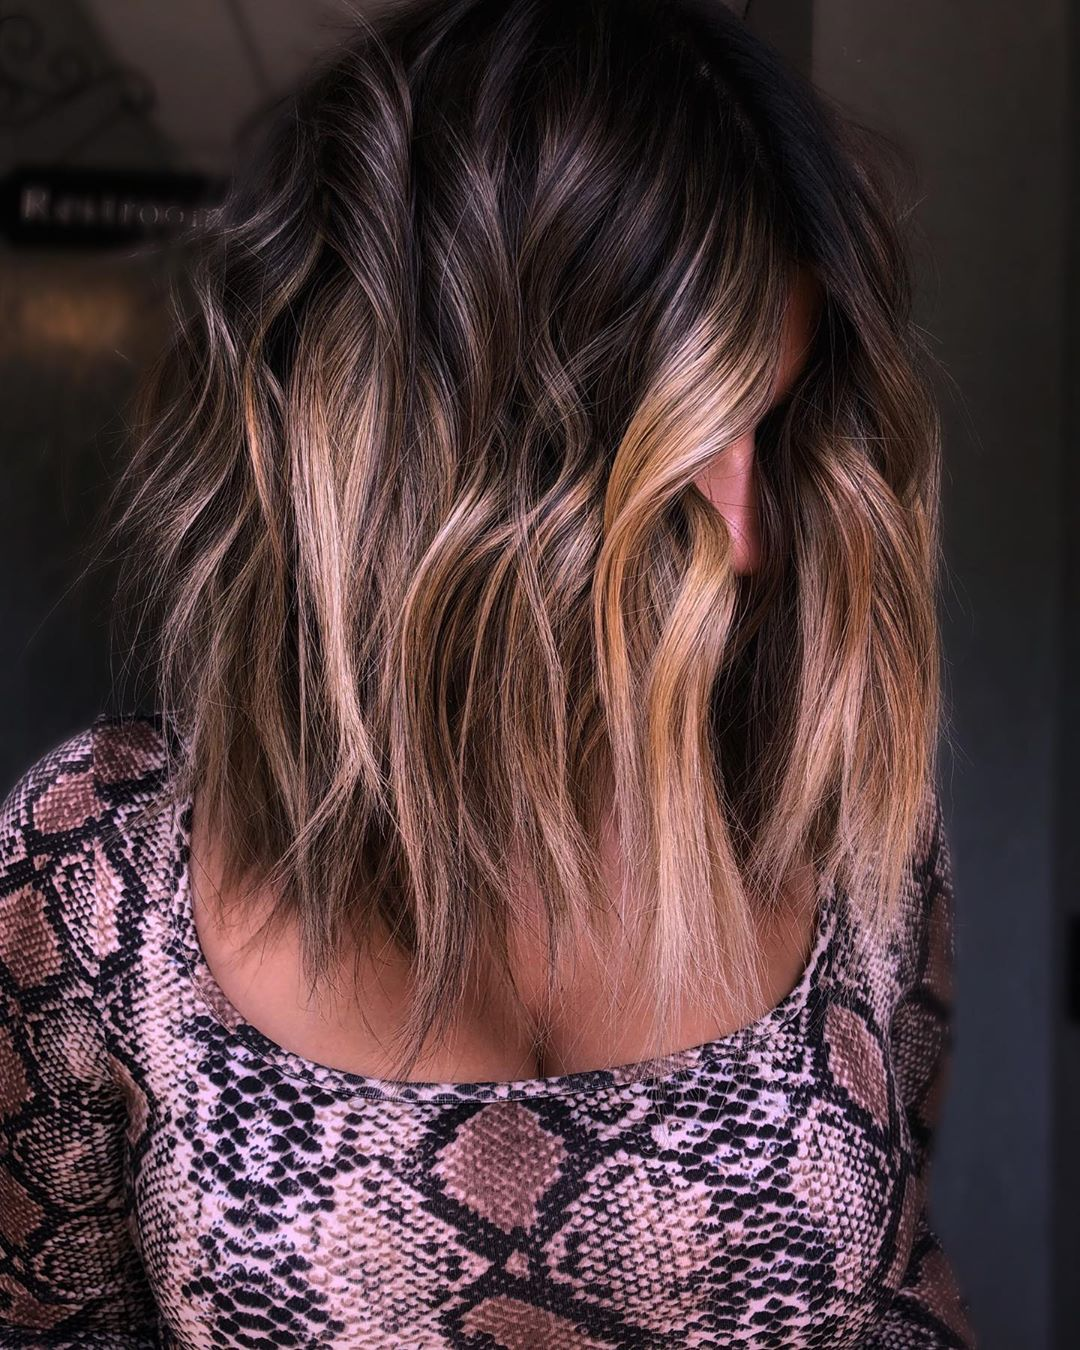 Fall Ombre Hair Trend